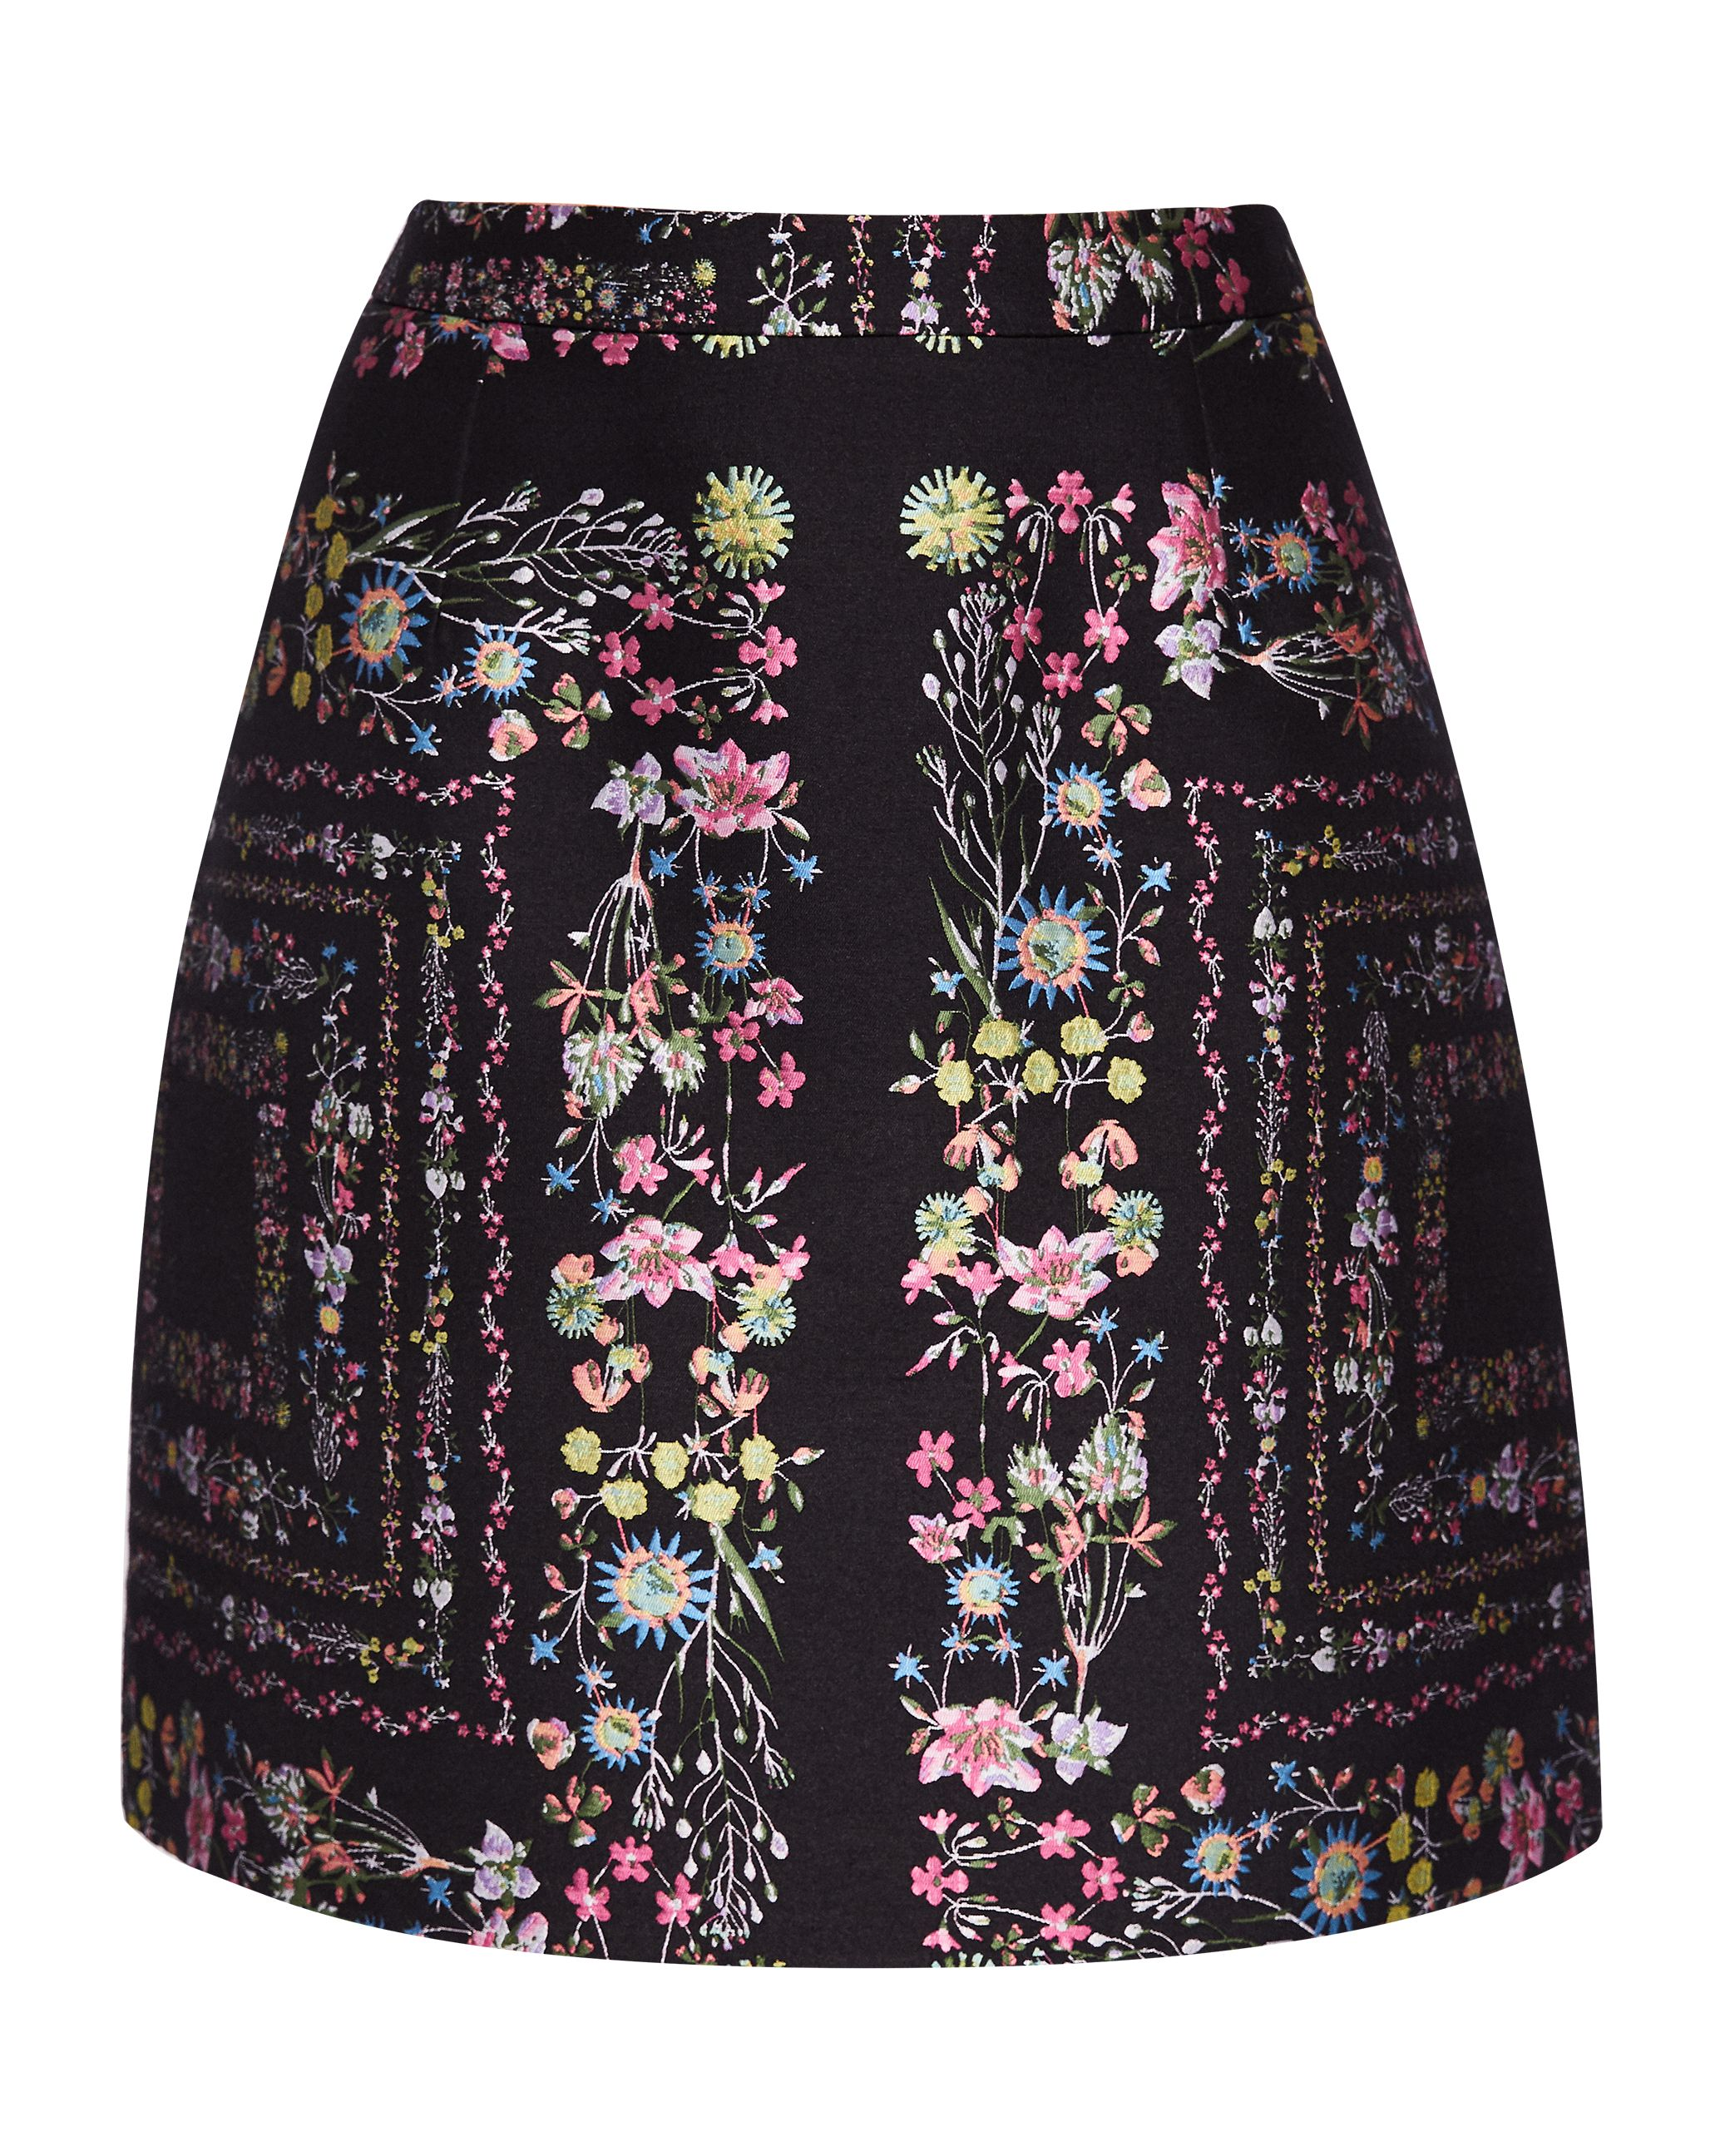 Ted Baker Addizon Unity Floral Skirt, Black